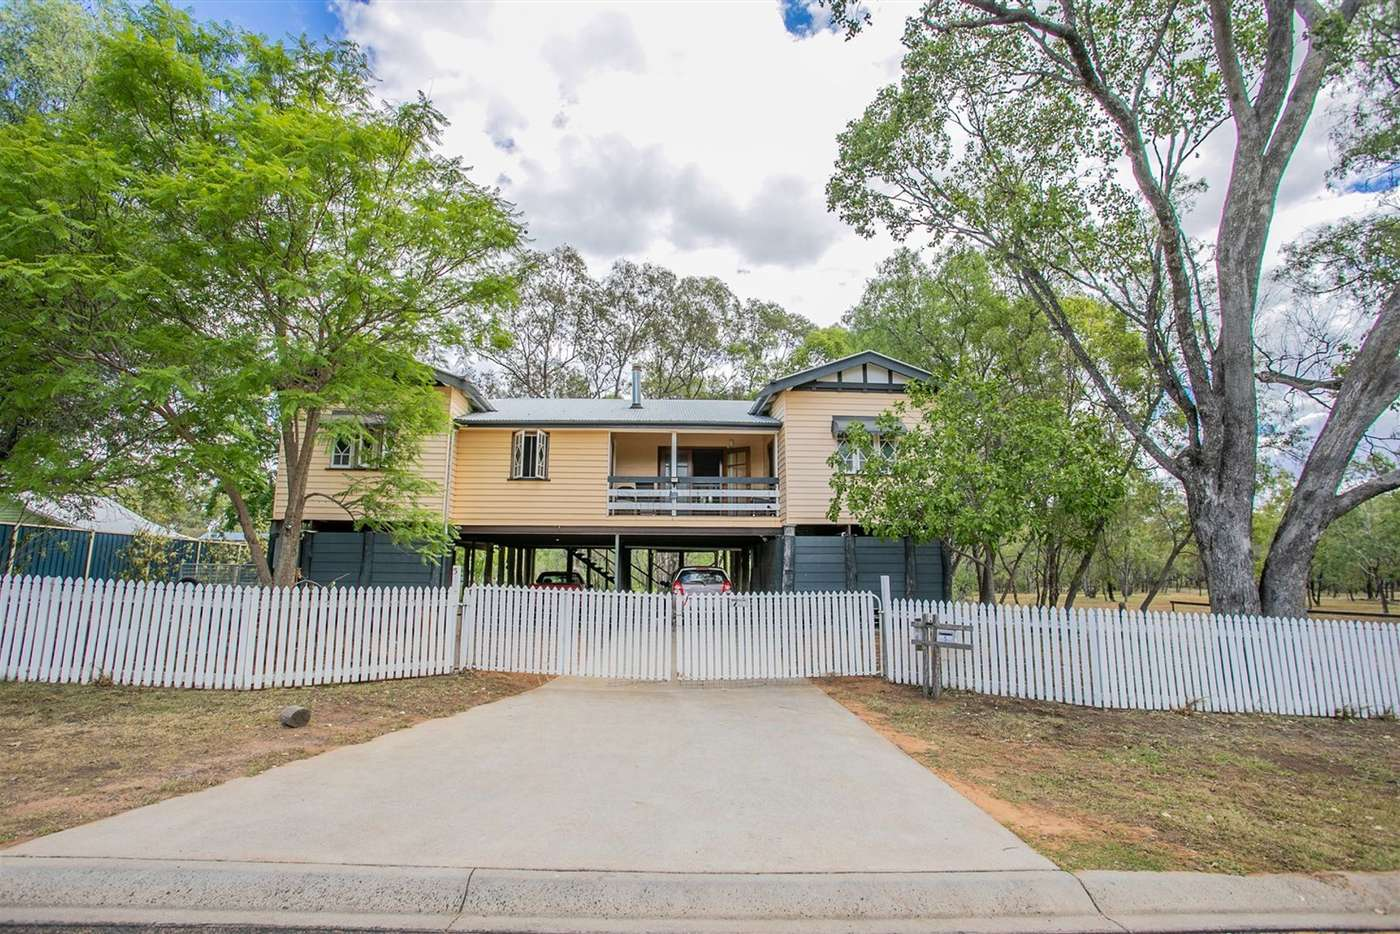 Main view of Homely house listing, 5 Middle Street, Chinchilla QLD 4413